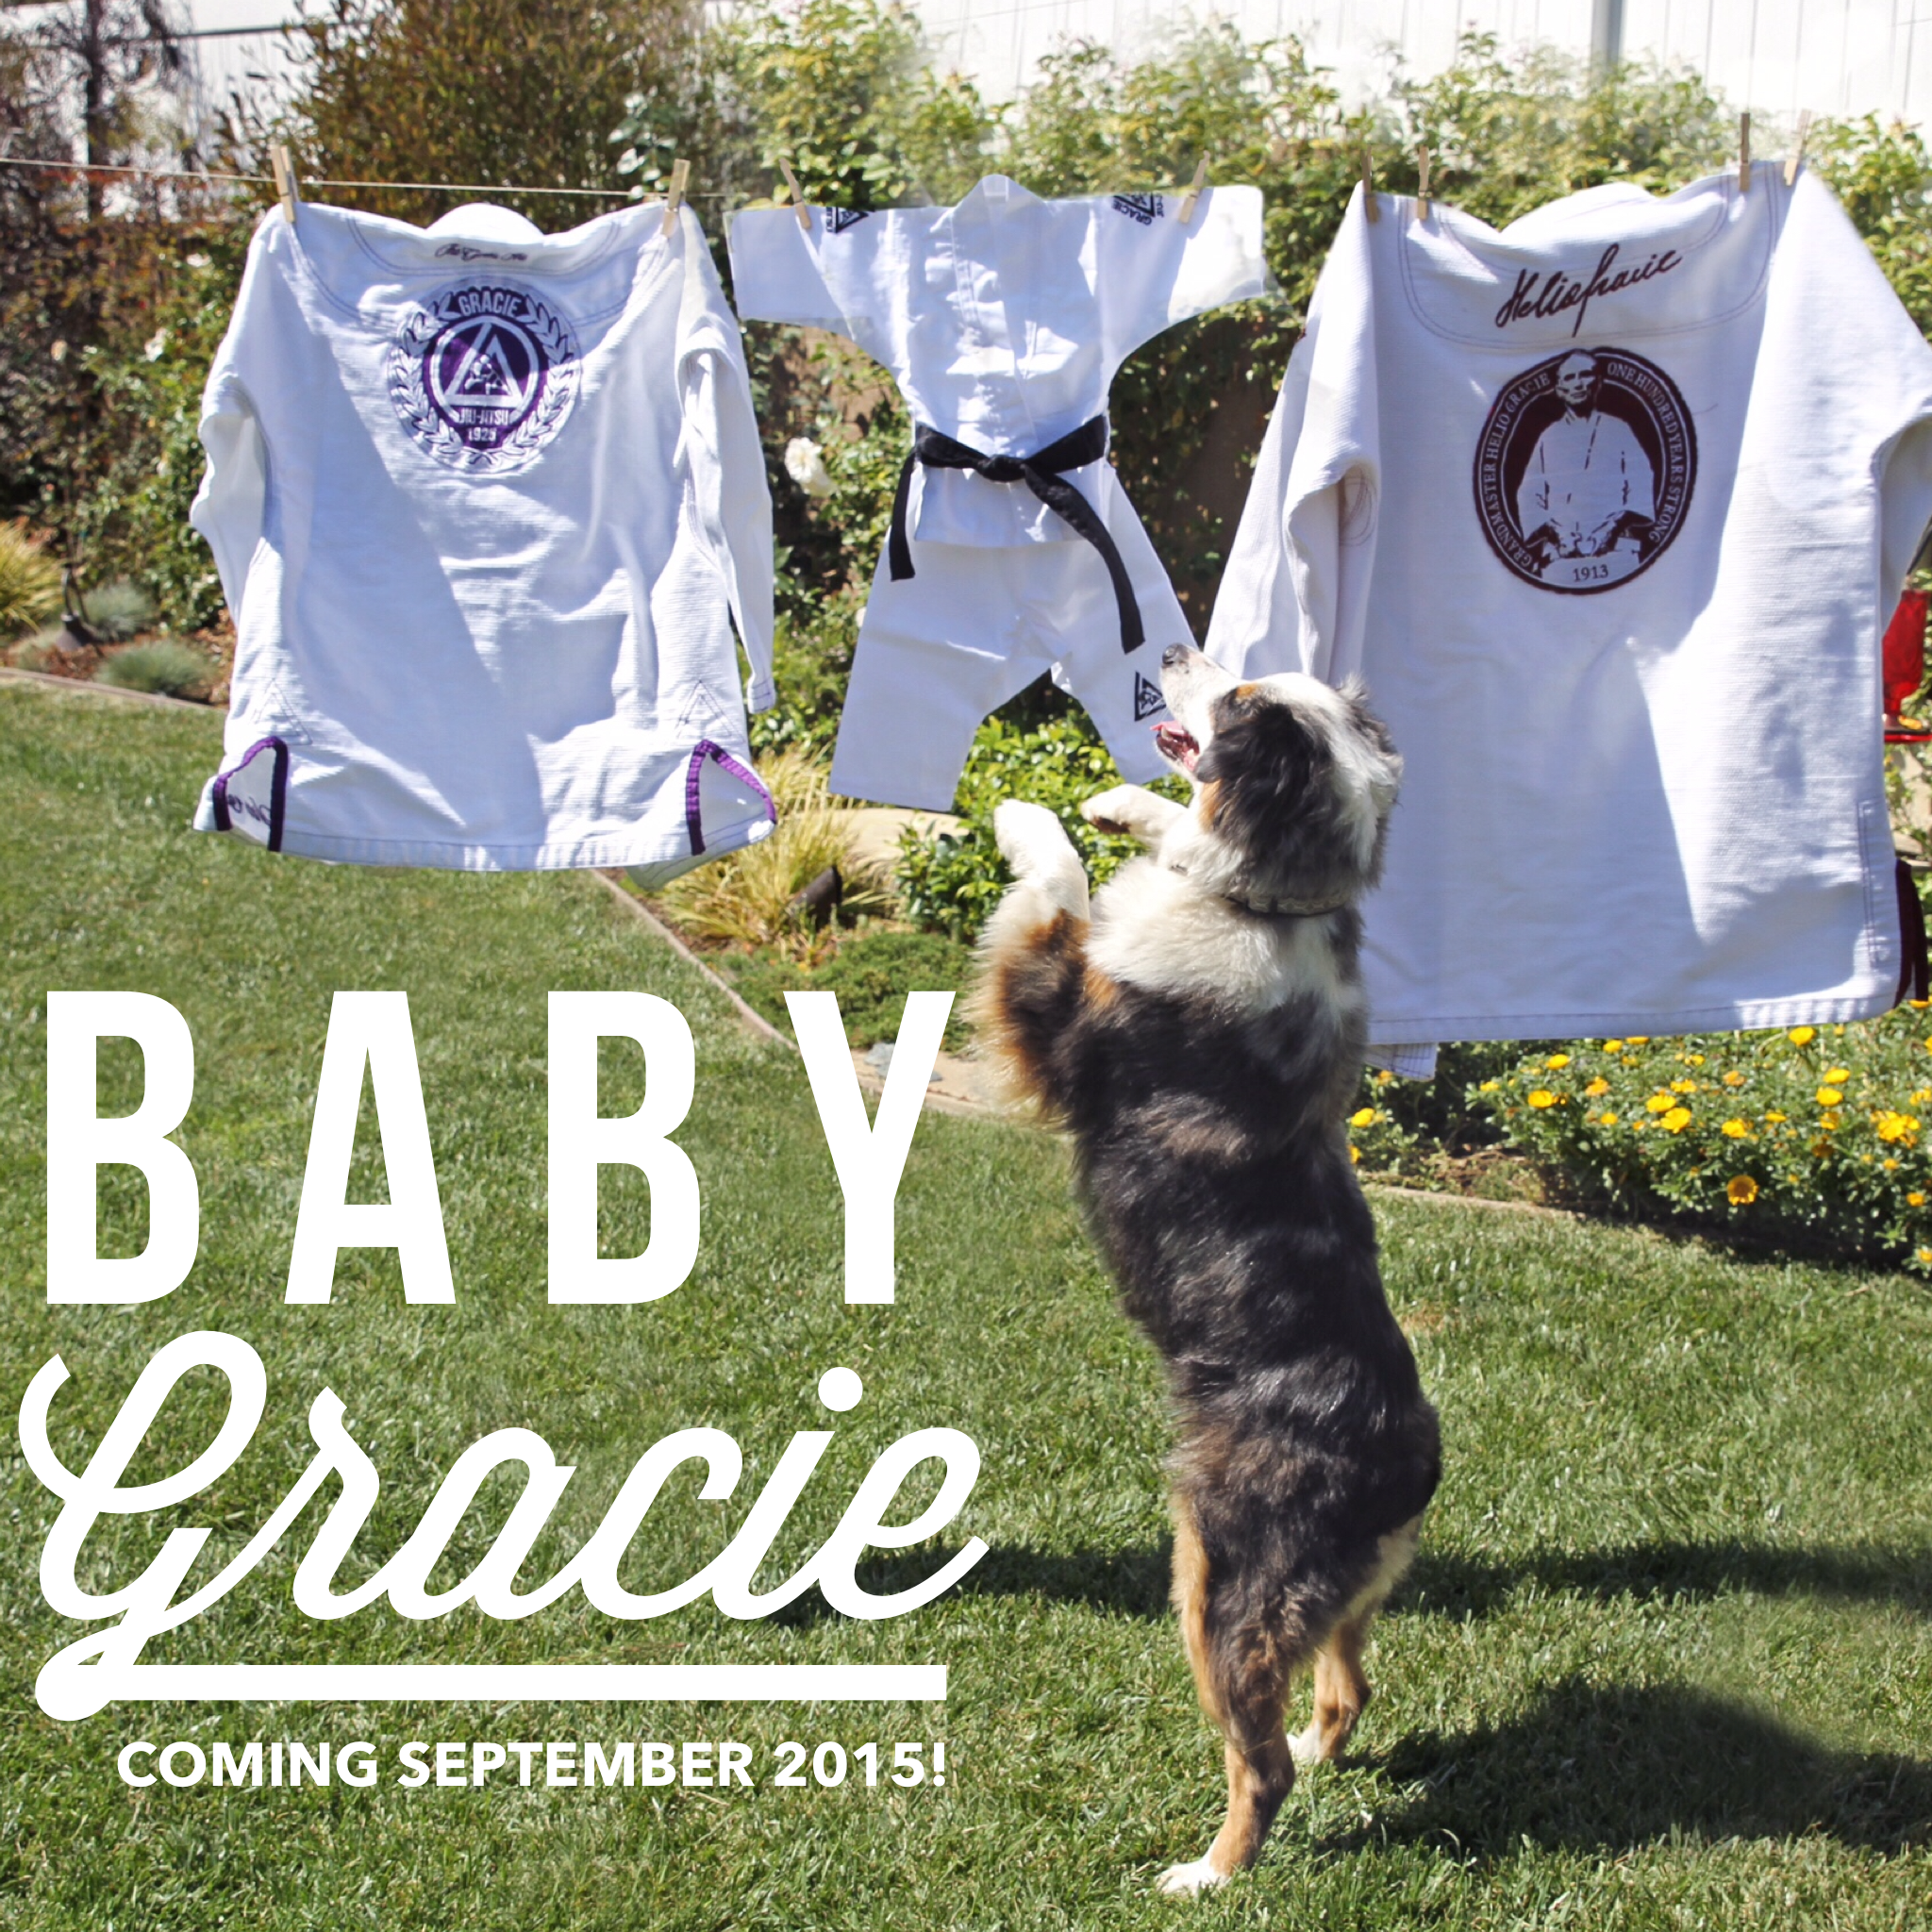 Baby Gracie is coming September, 2015!